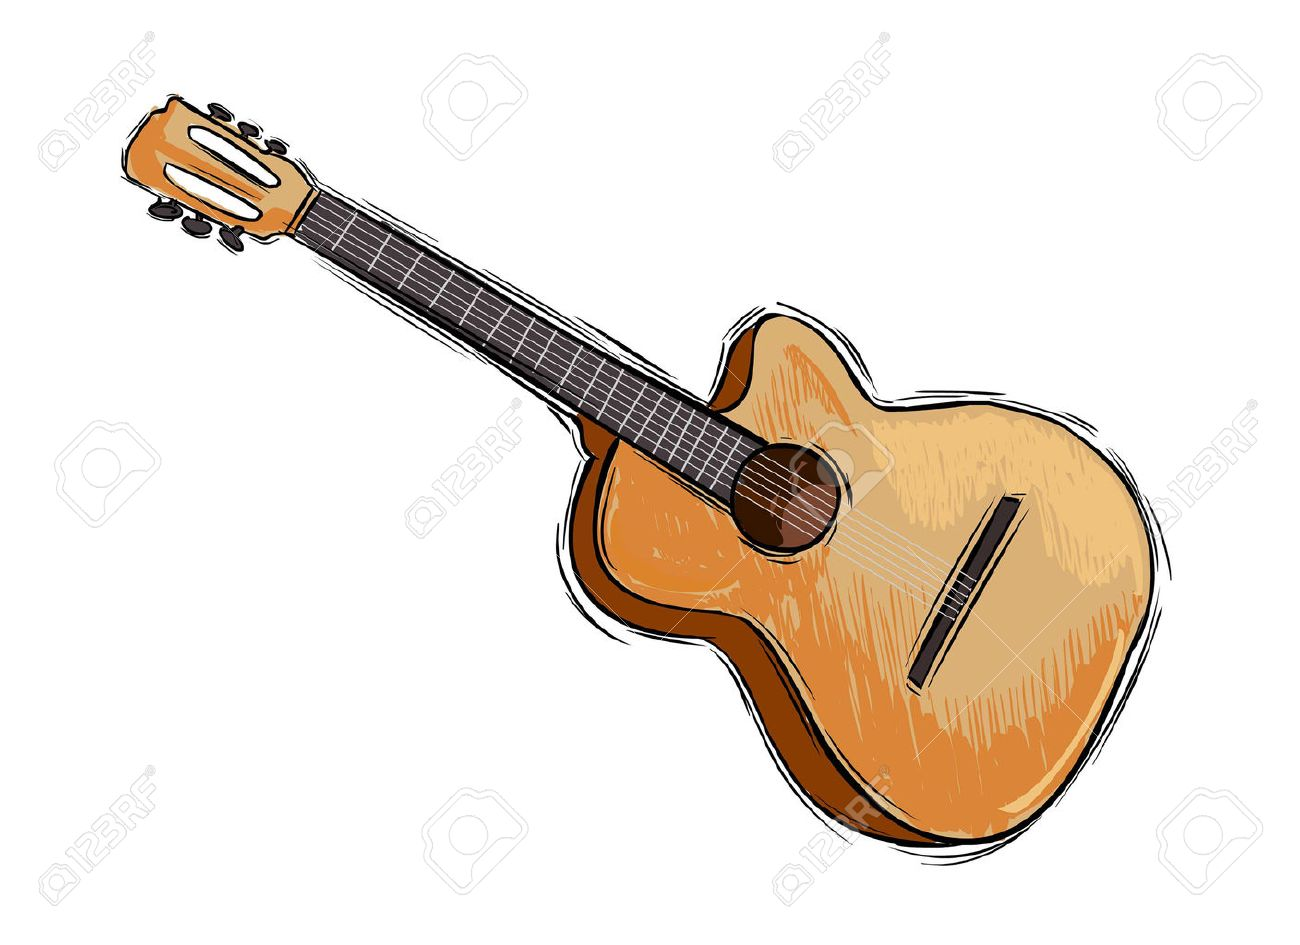 1300x945 Vector Illustration Of A Instrument Guitar Drawing Royalty Free